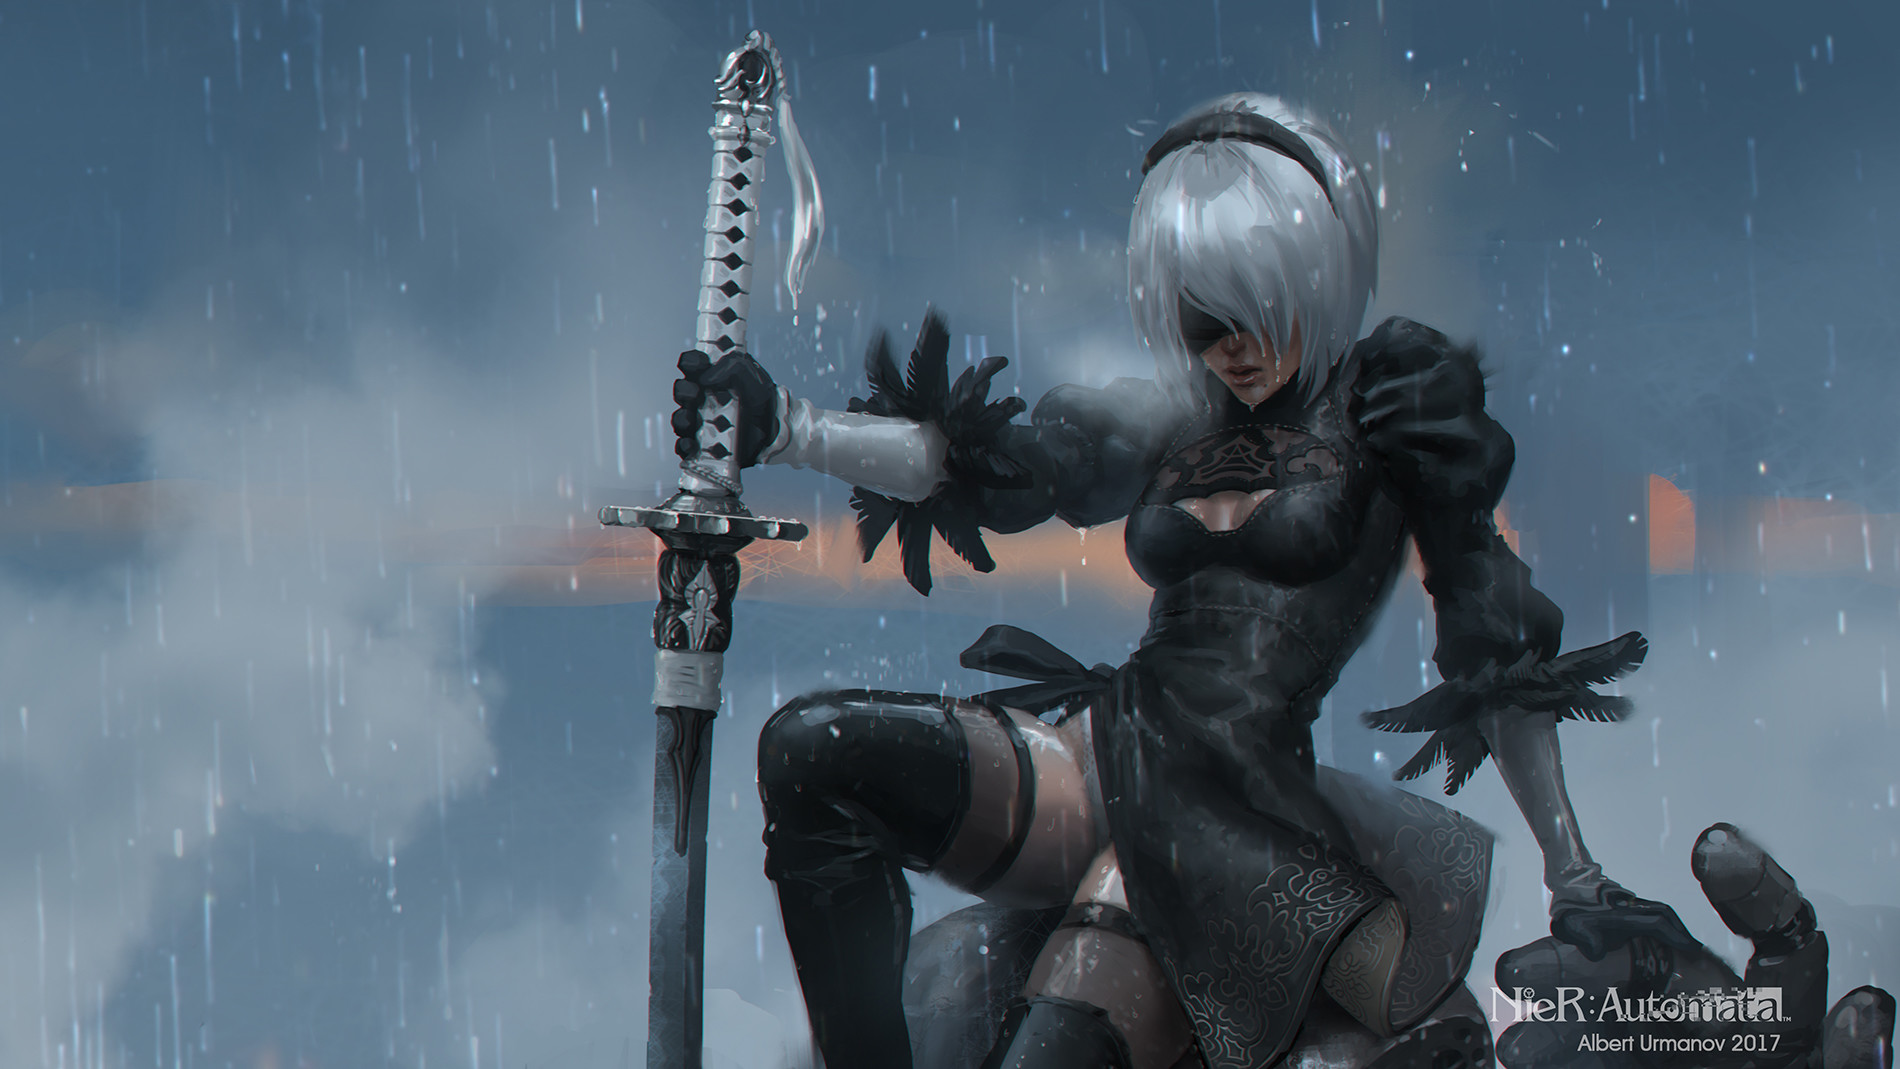 Nier Automata Fan Art Wallpaper 01 1920x1080: Nier: Automata 2B